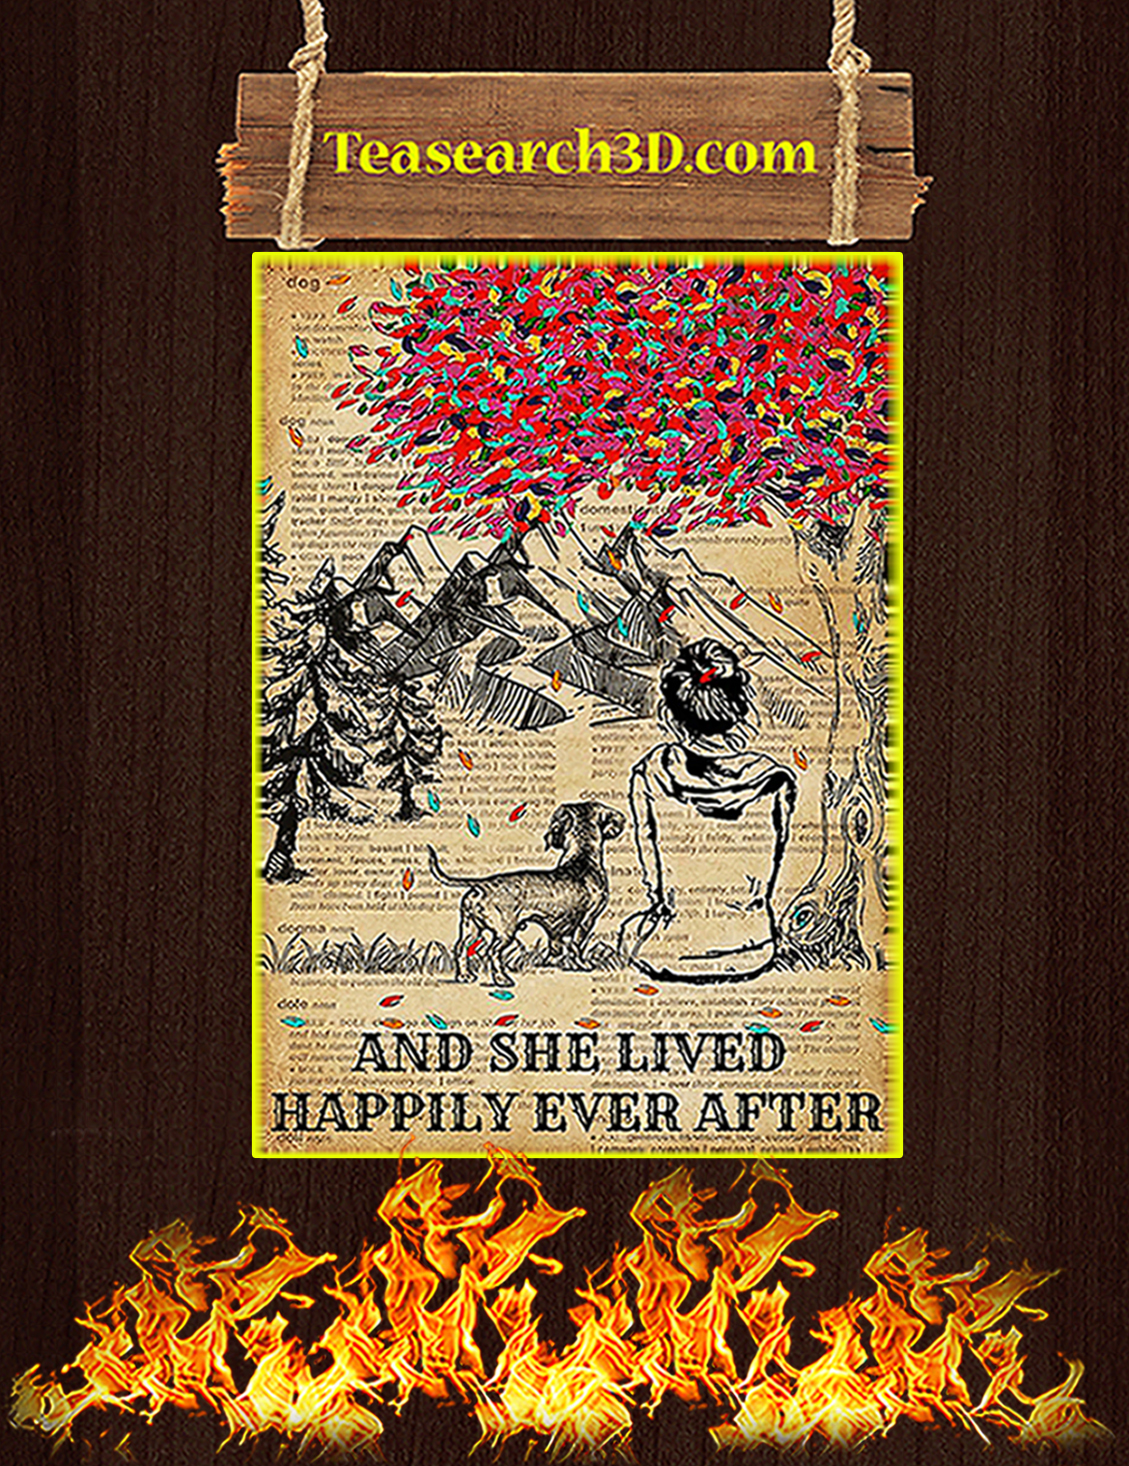 Dictionary dachshund and she lived happily ever after poster A3